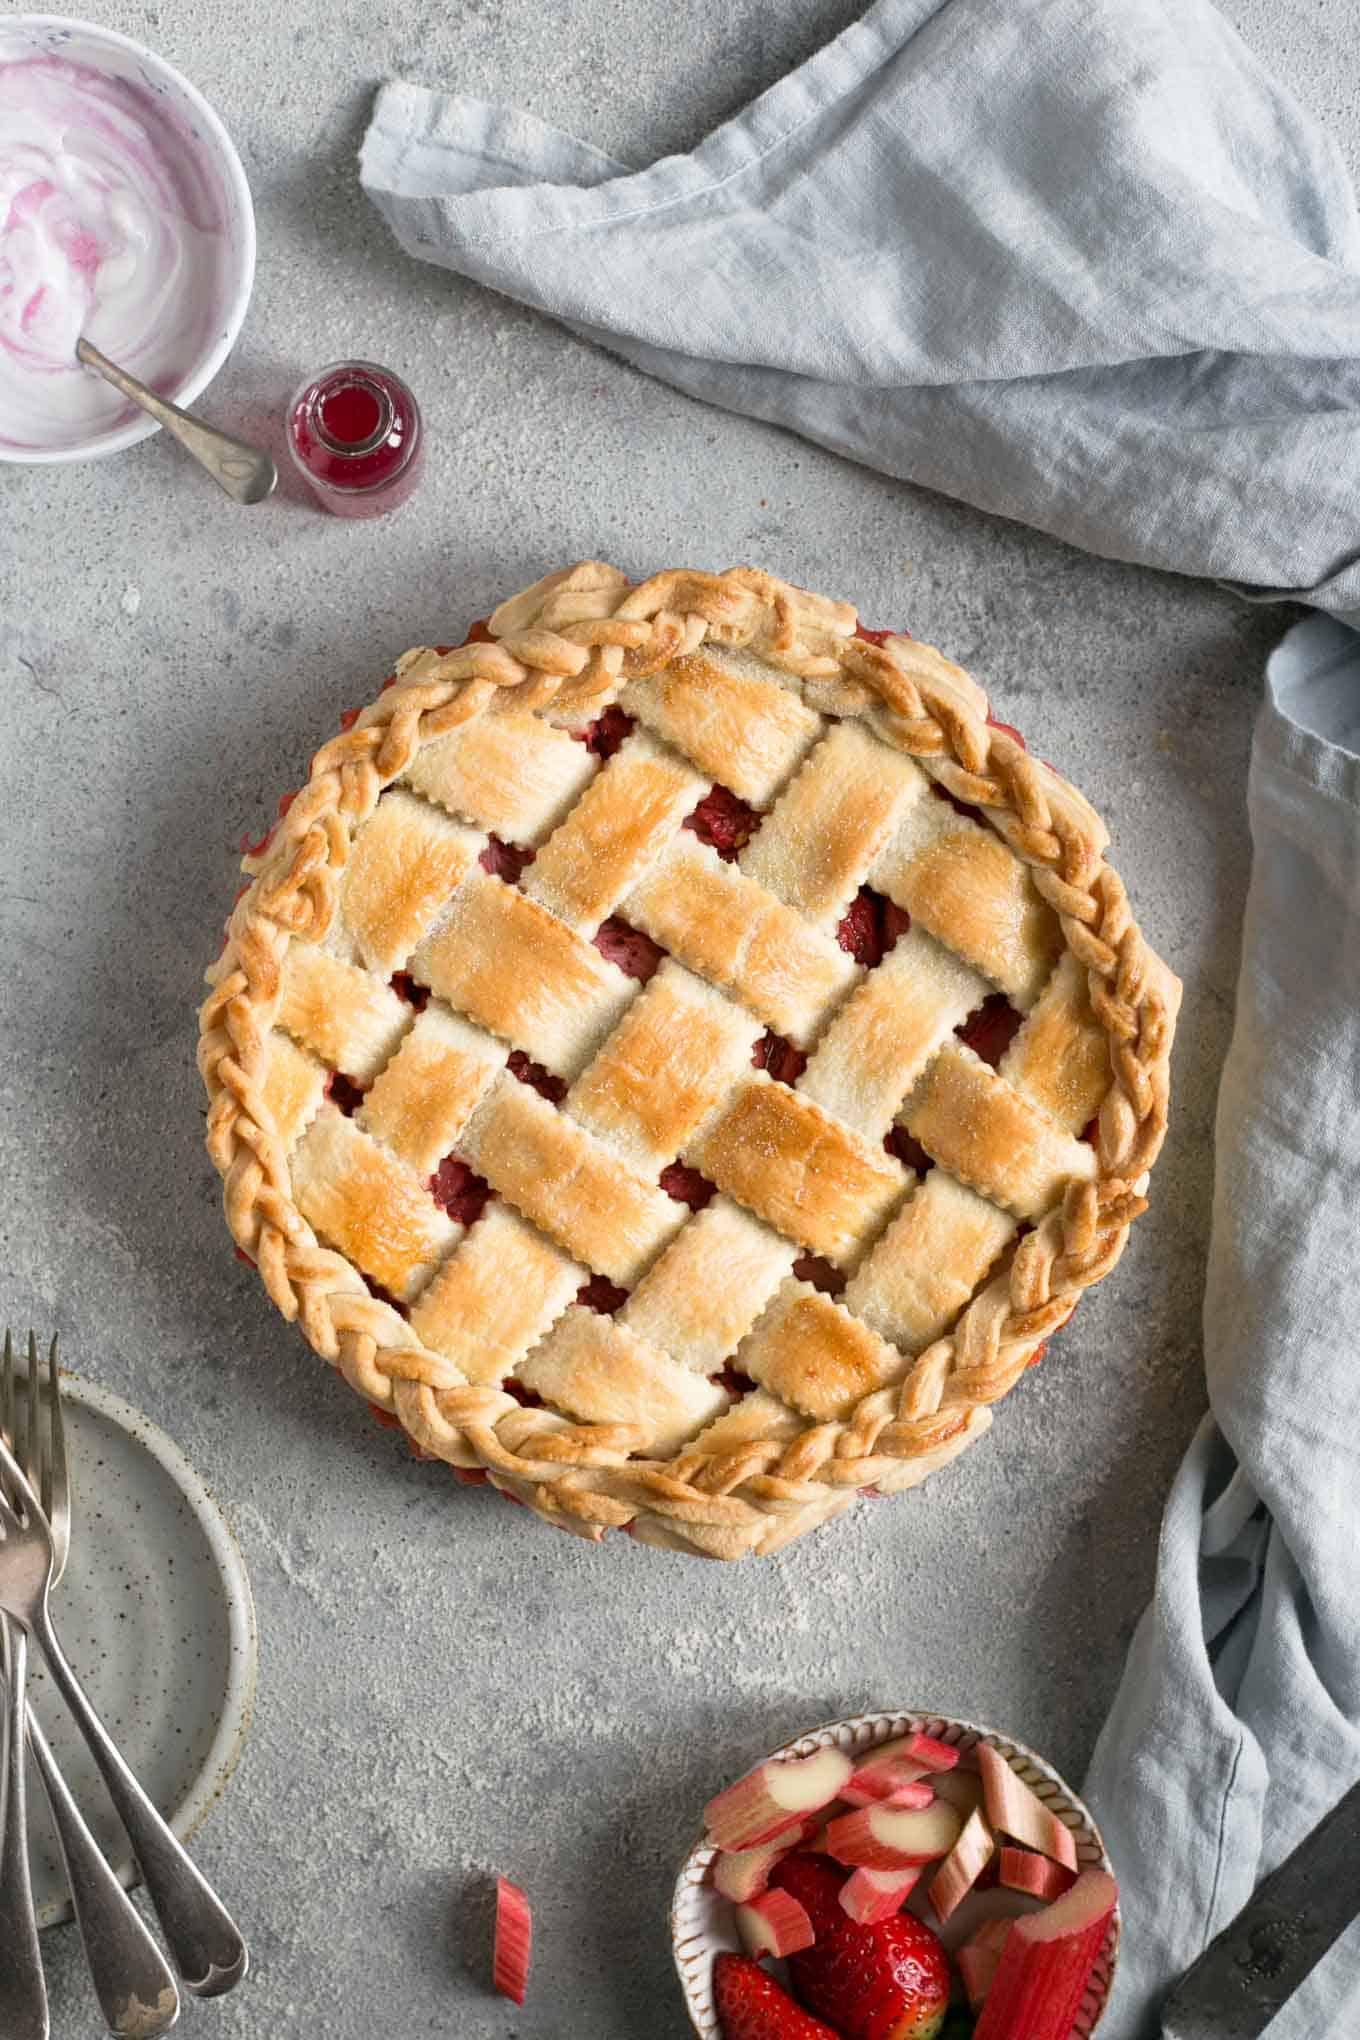 Classic rhubarb strawberry pie. Easy and delicious recipe, ideal for a whole family! #vegetarian #rhubarb #pie | via @annabanana.co